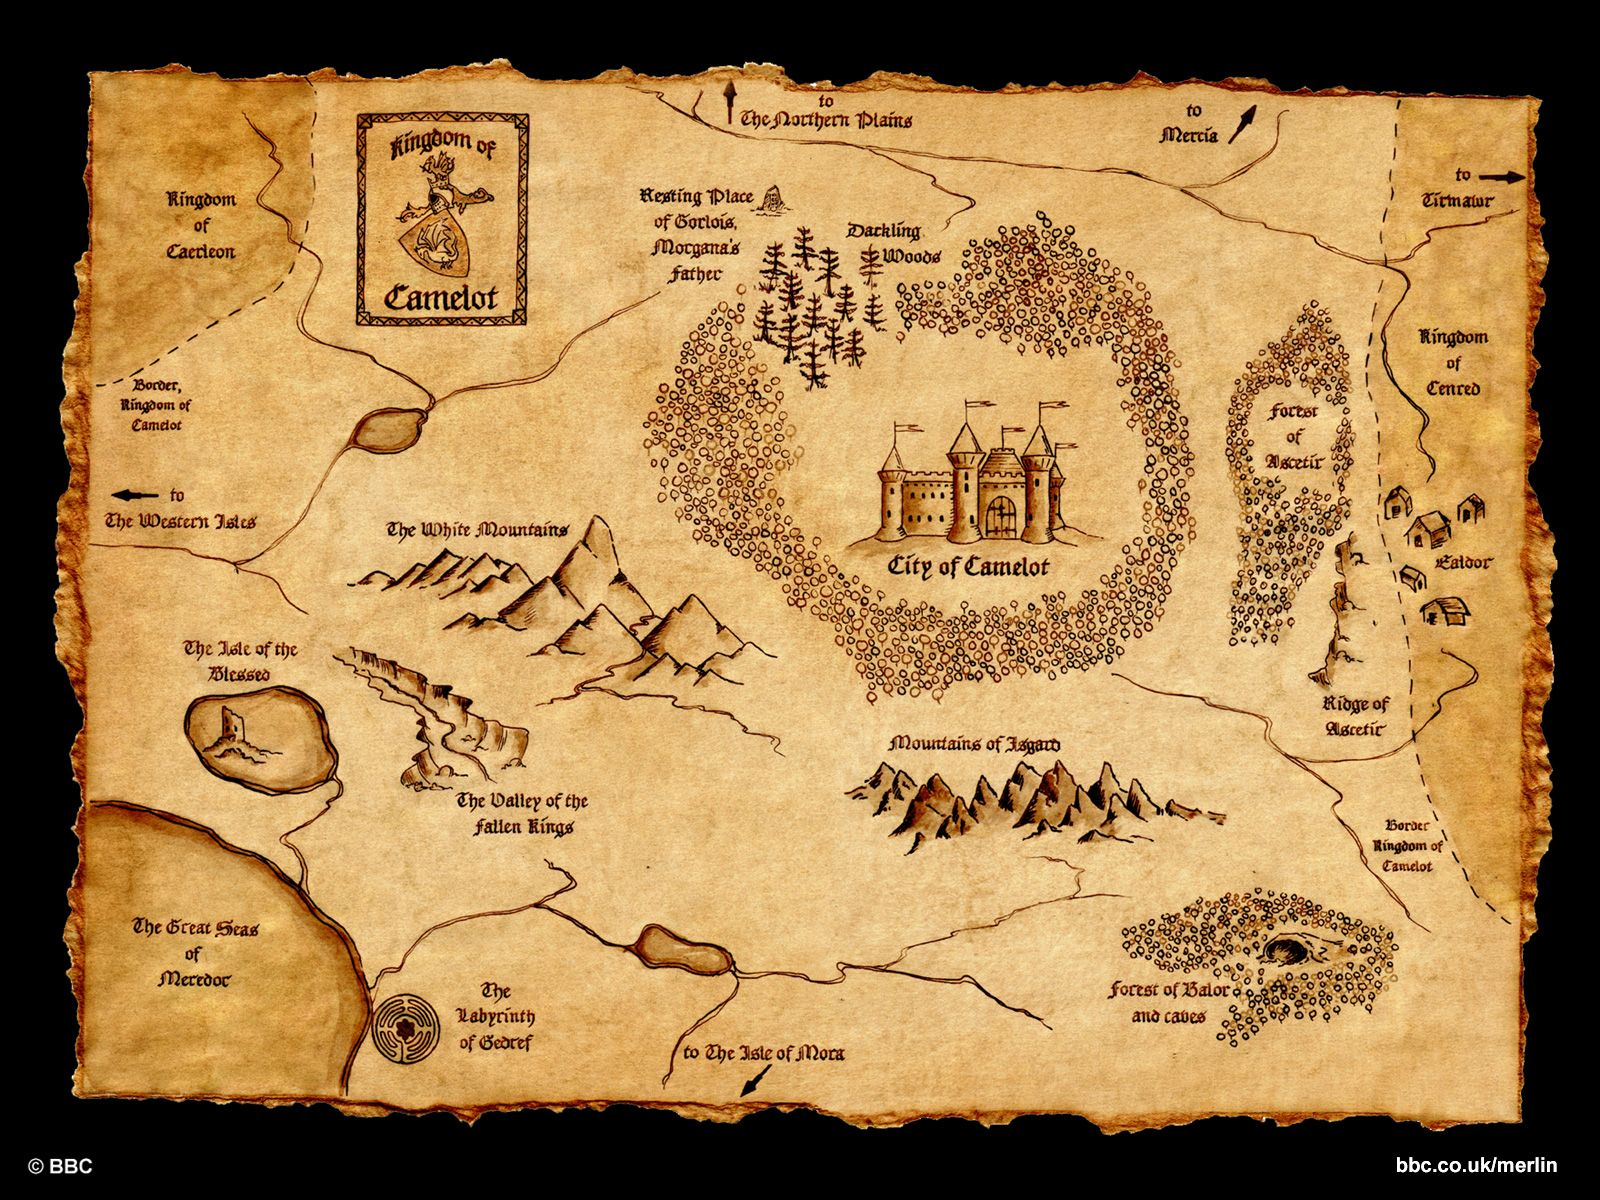 Map of Camelot. This explains so much! I've always wondered ... Direction Map Uk on travel directions, scale directions, compass directions, get directions, driving directions, mapquest directions, giving directions, traffic directions,